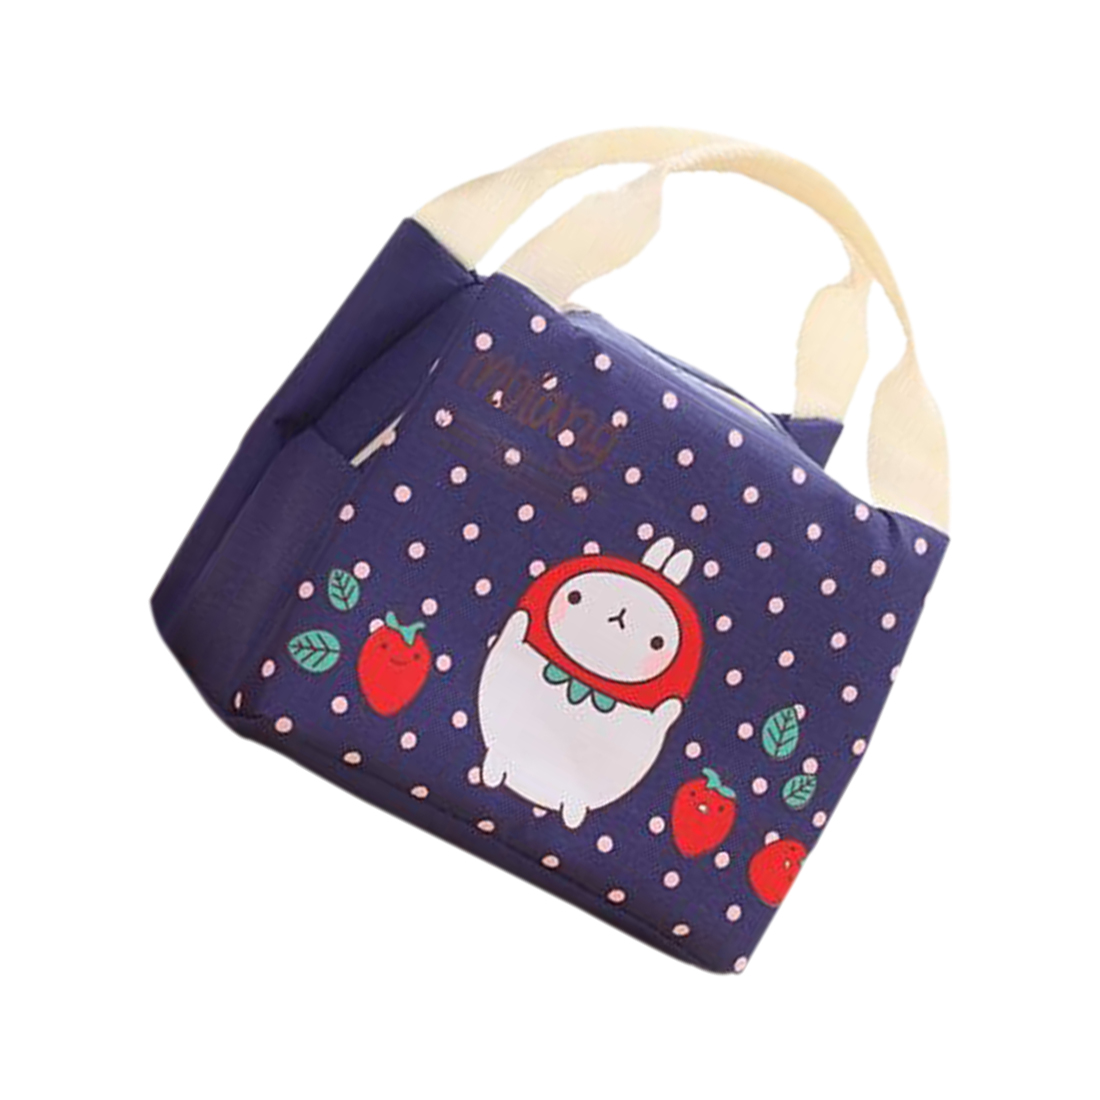 SNNY NEW Cute Rabbit Canvas Lunch Thermal Bag Portable Insulated Food Picnic Bags Cooler Lunch Box Bag Tote(dark blue)